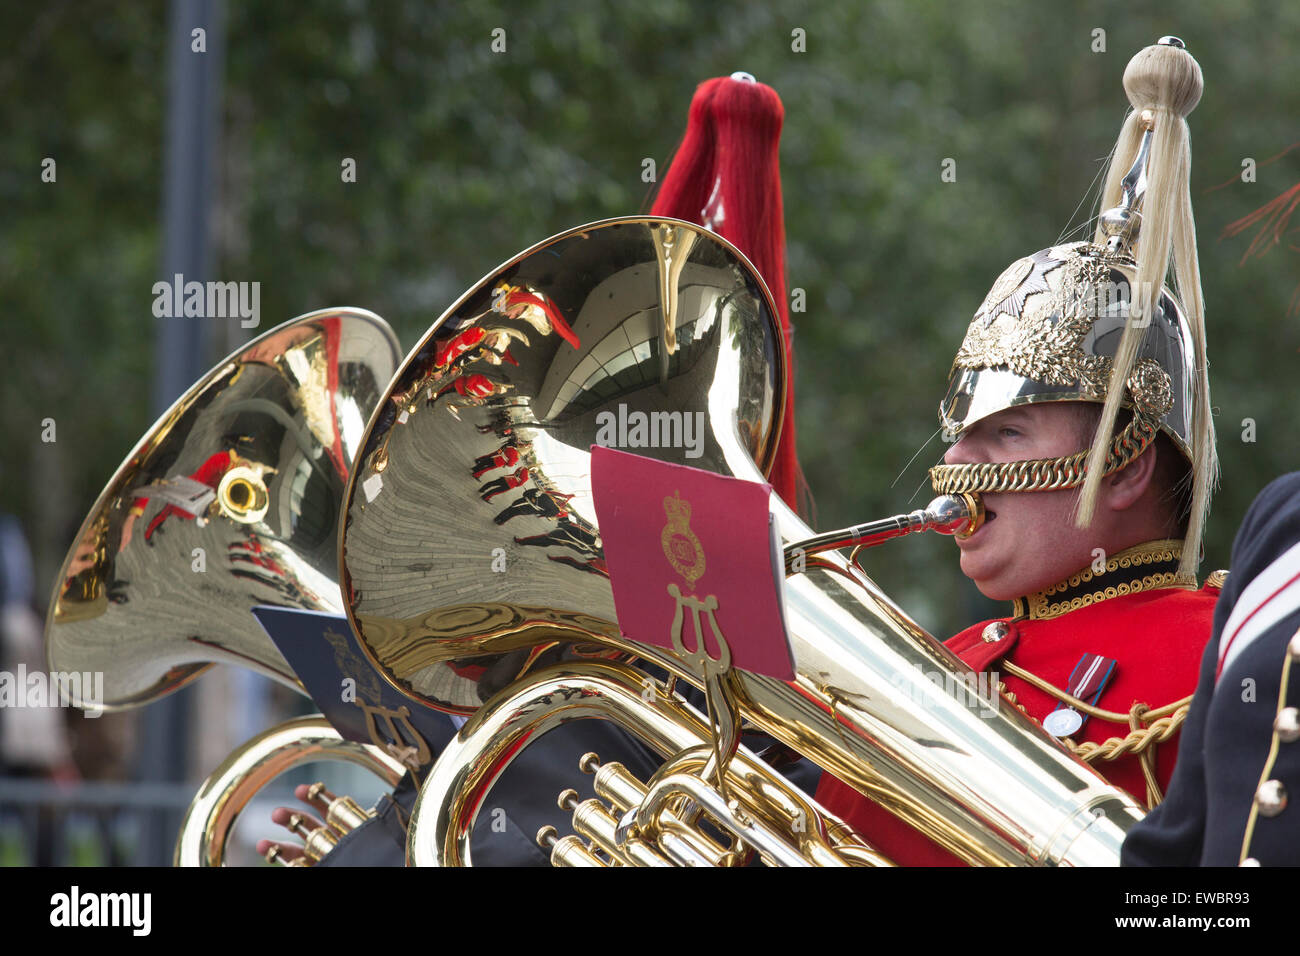 London, UK. 22 June 2015. A marching band at the event. Boris Johnson, the Mayor of London, and London Assembly - Stock Image